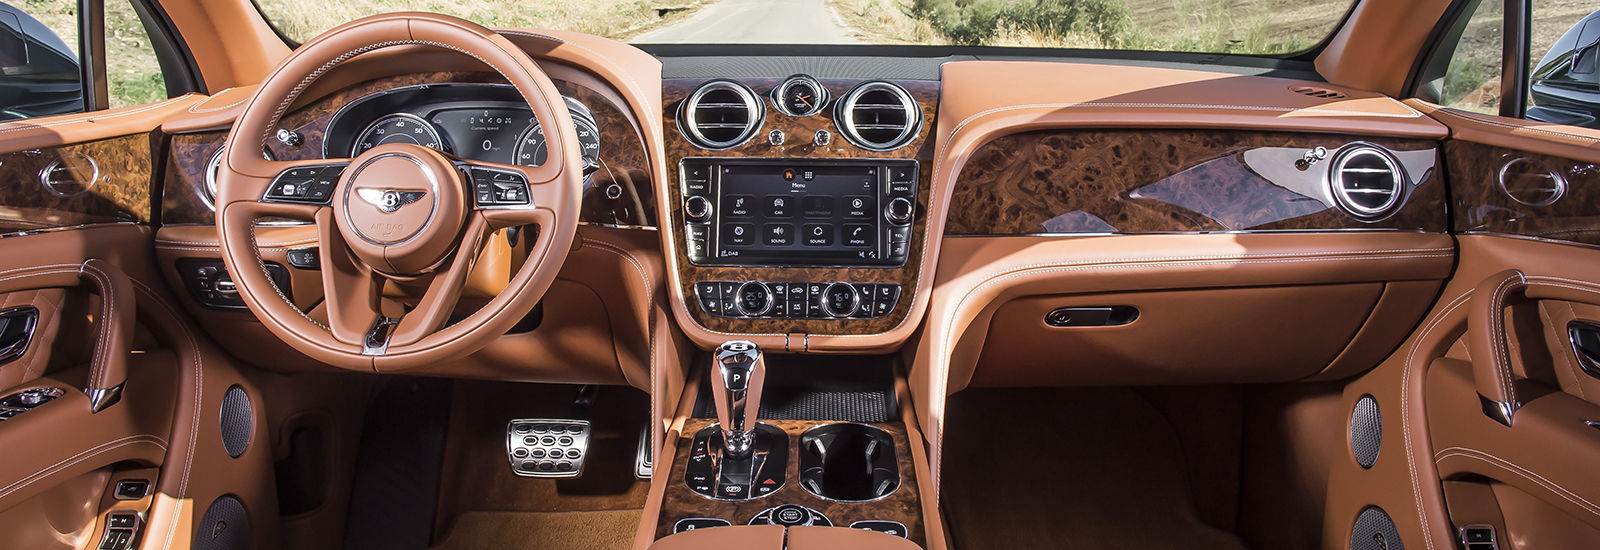 2018 bentley continental gt release date autos specs prices and. Cars Review. Best American Auto & Cars Review